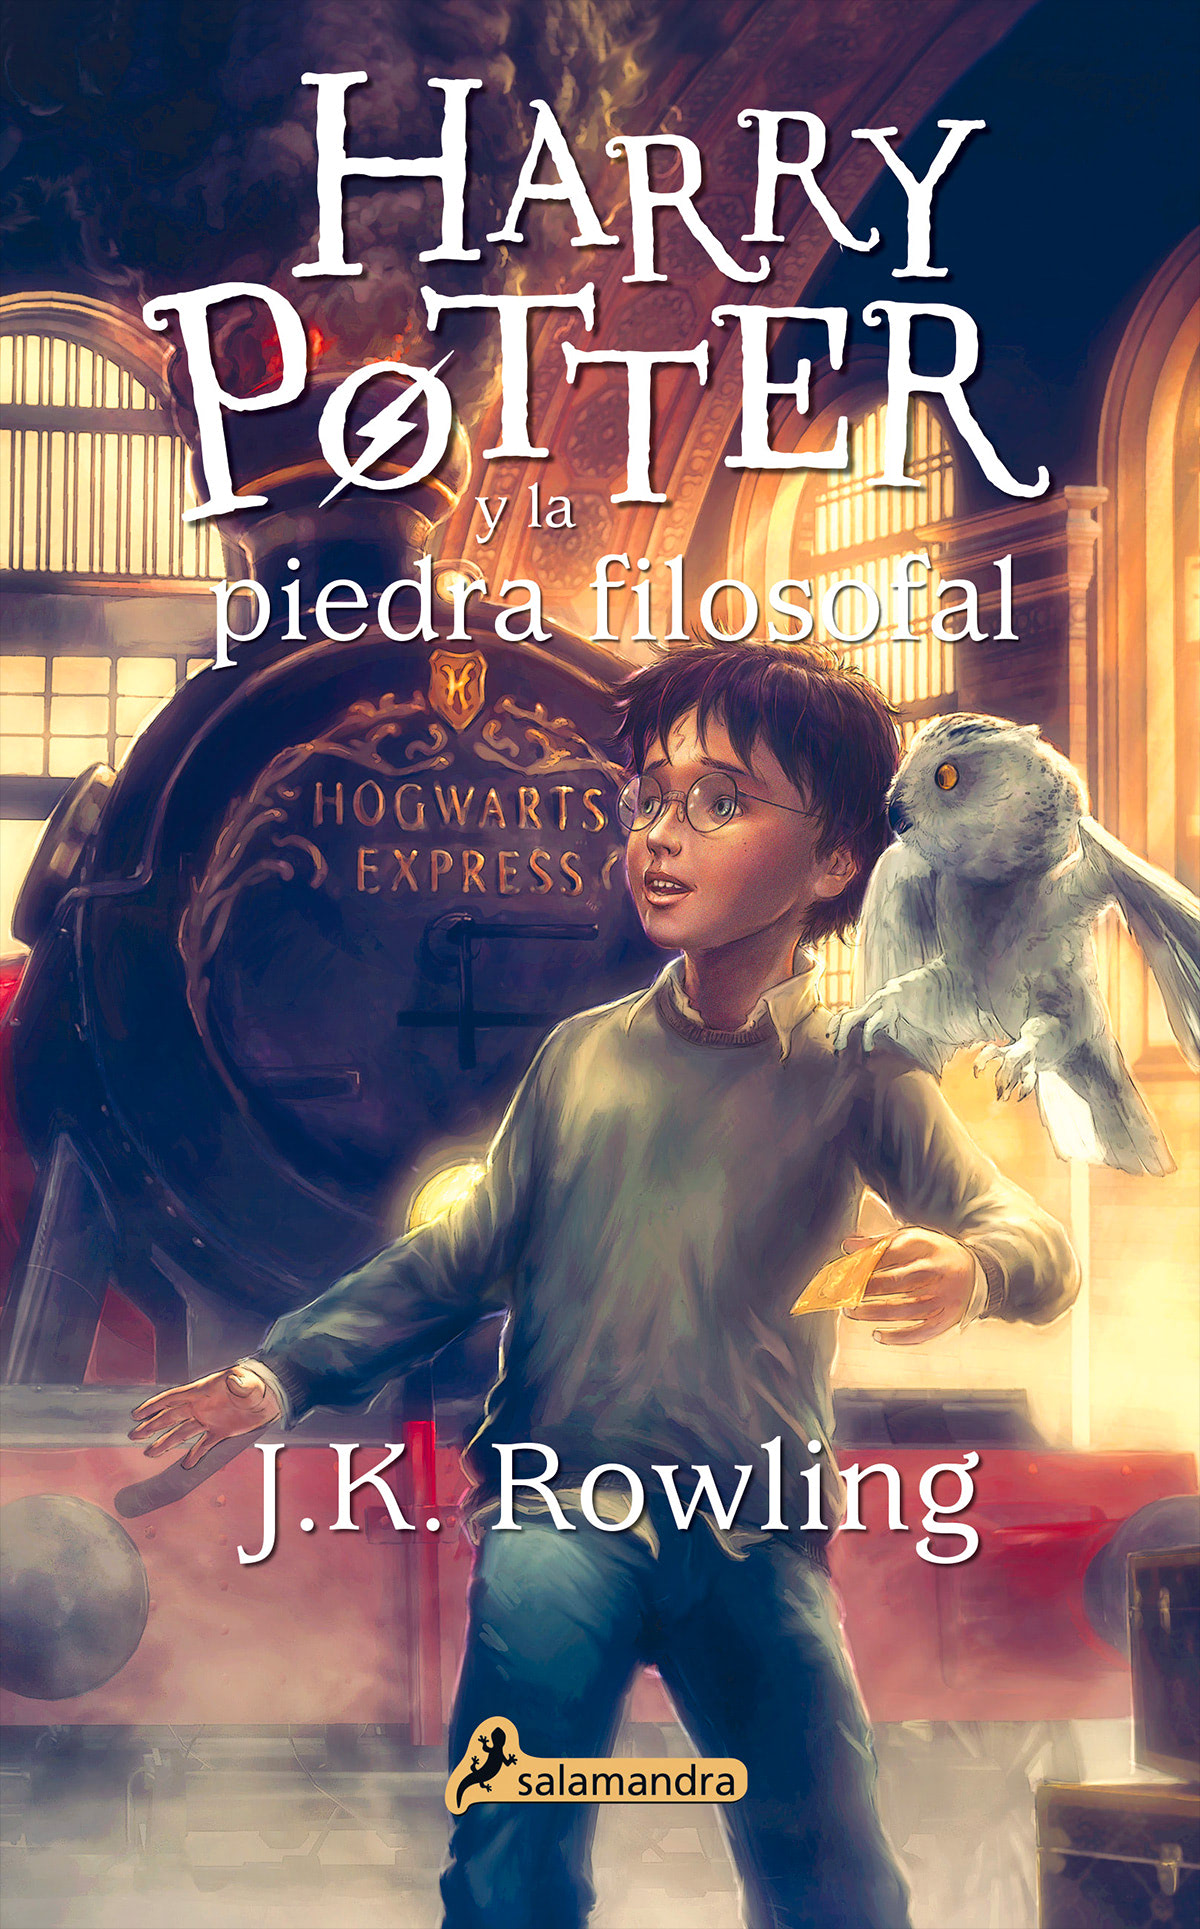 'Philosopher's Stone' Spanish anniversary edition